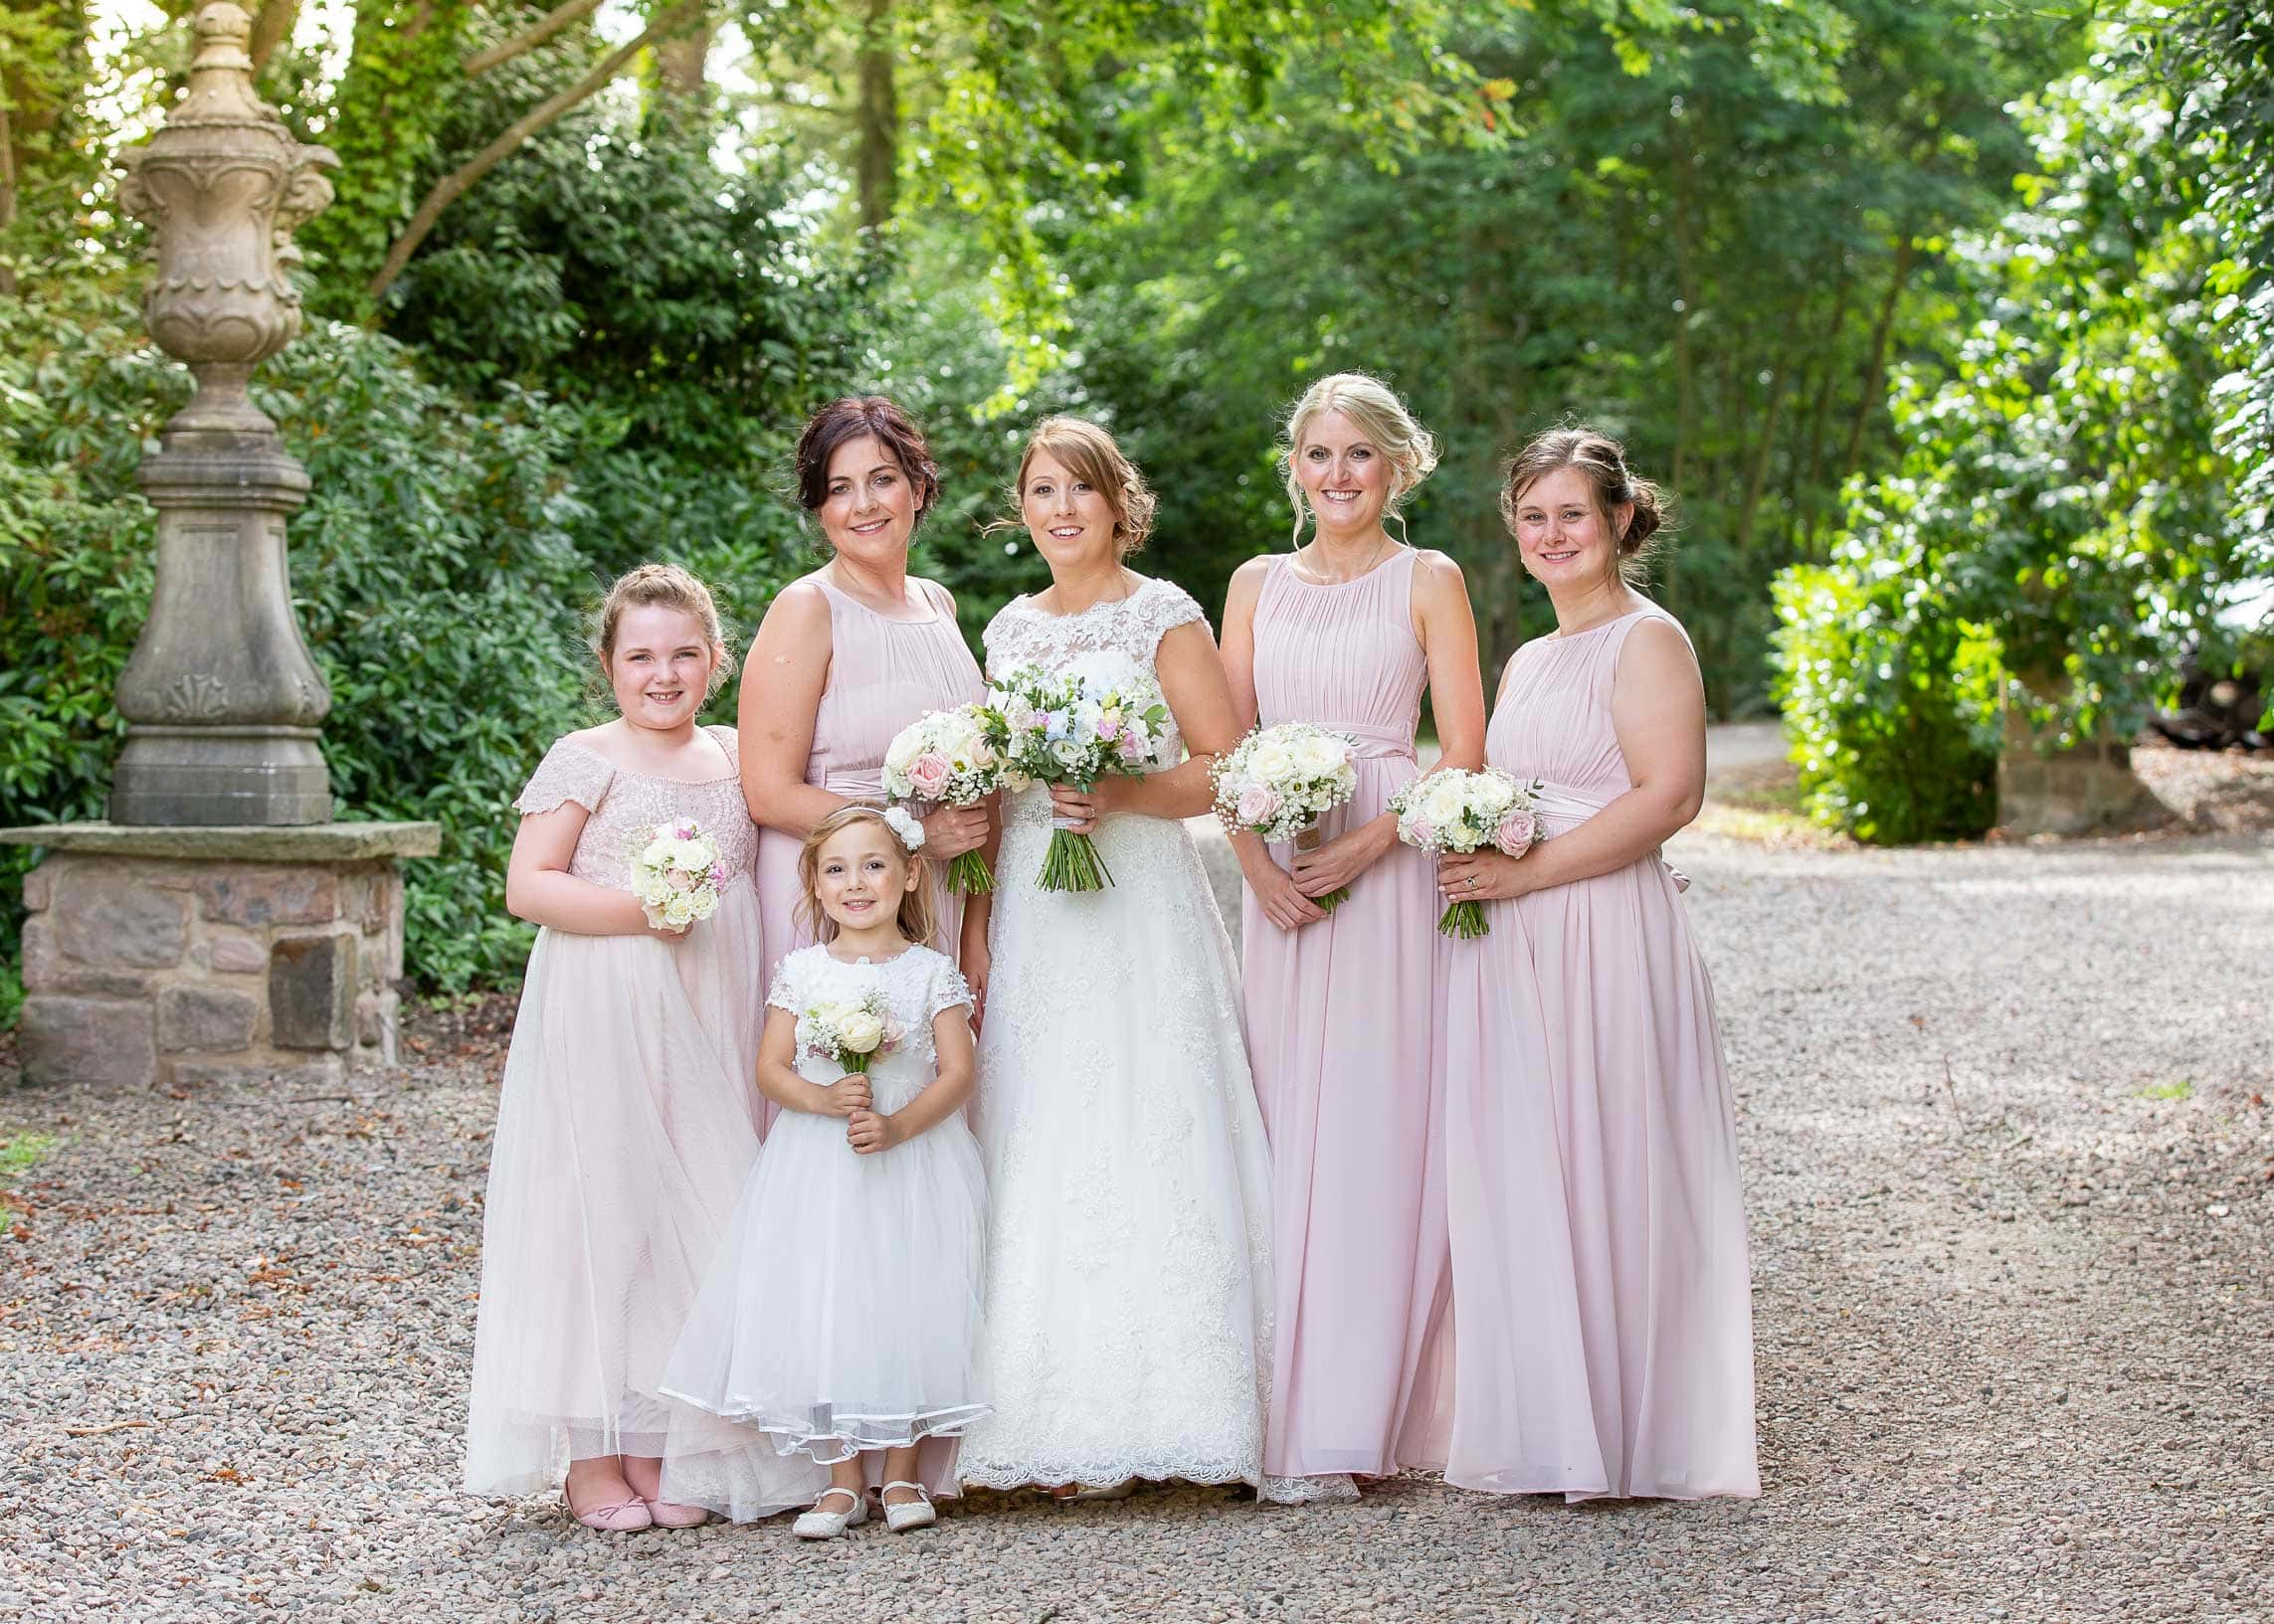 wedding photo of the bride and bridesmaids